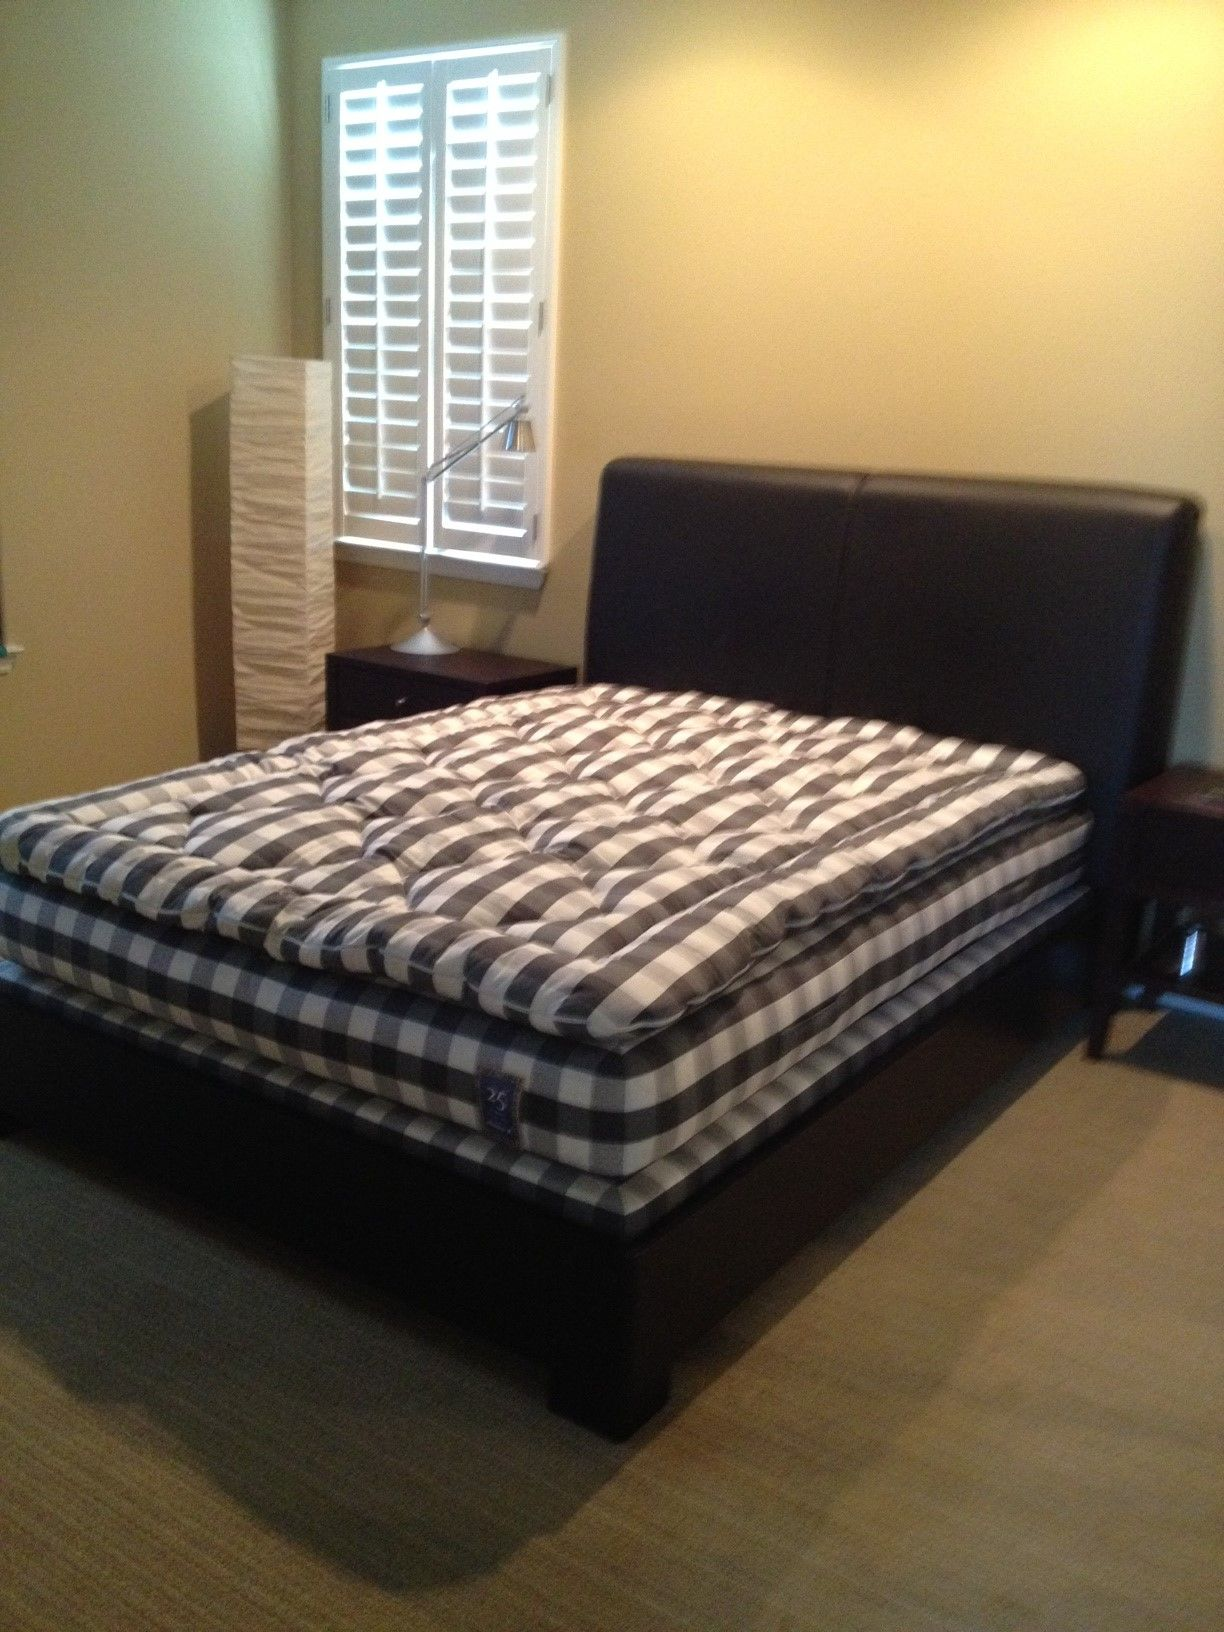 Colchones Hastens.This Hastens Graphite Gray Check Luxuria Fit Perfectly Into